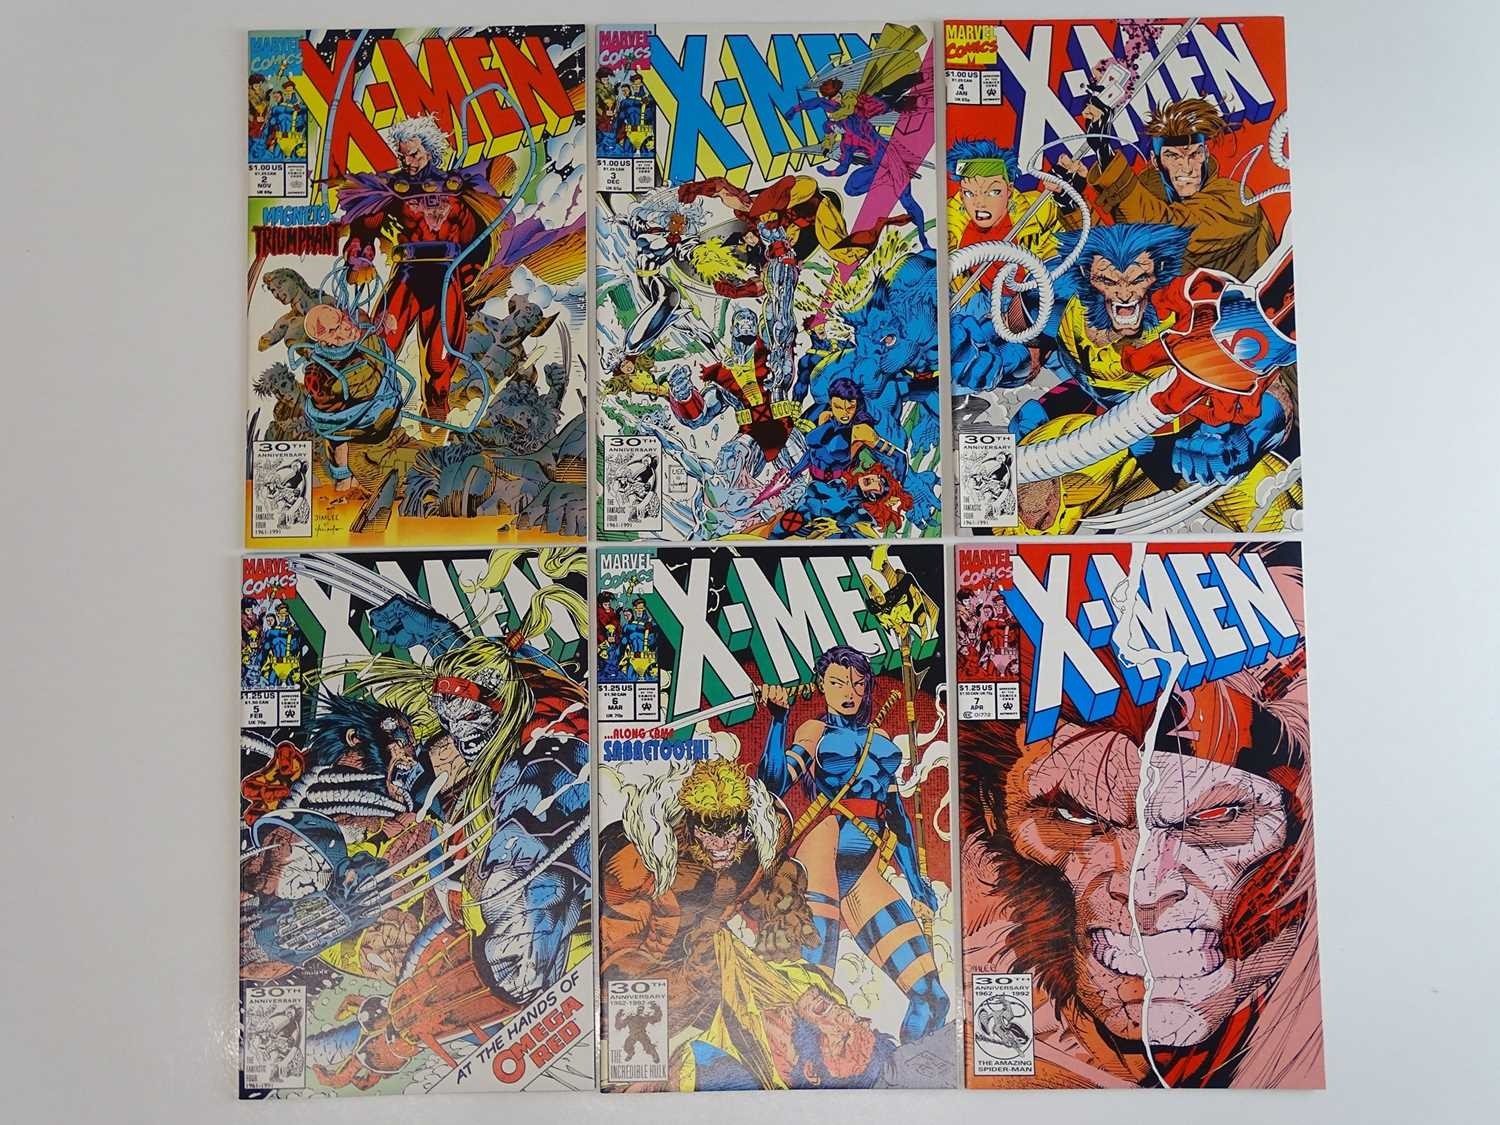 X-MEN #2, 3, 4, 5, 6, 7 - (6 in Lot) - (1991/92 - MARVEL) - Includes First & Second appearance of